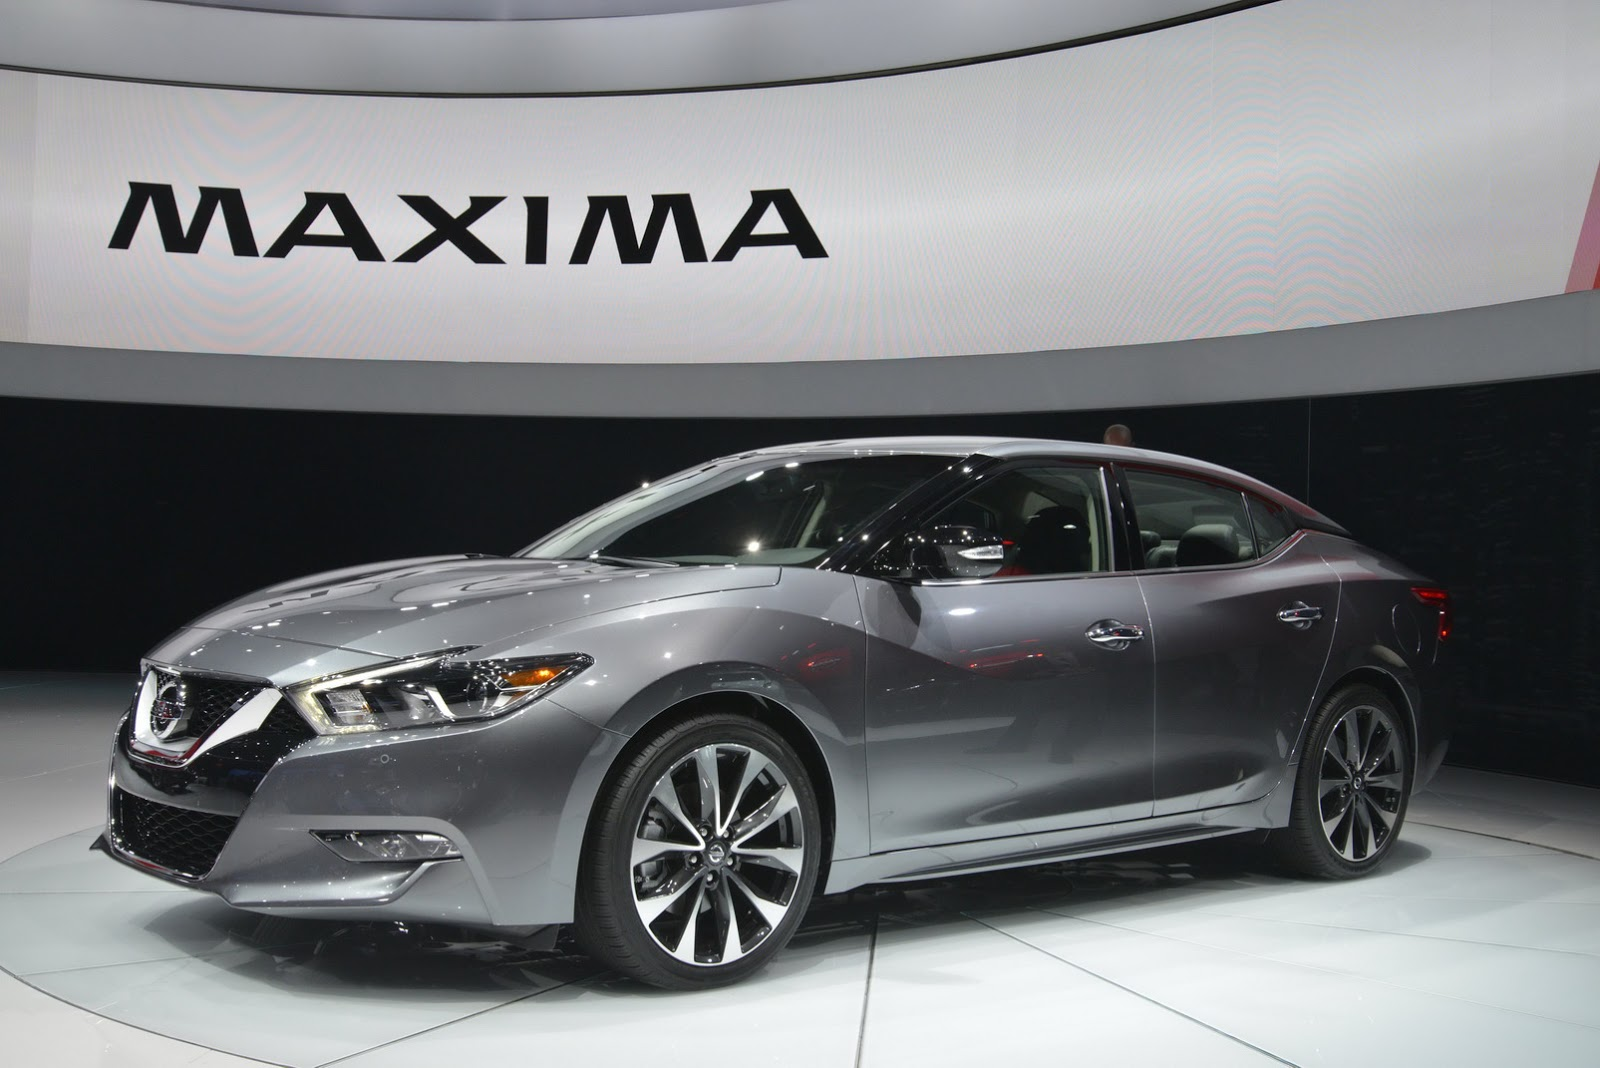 Nissan S Stunning All New 2016 Maxima Revealed In New York